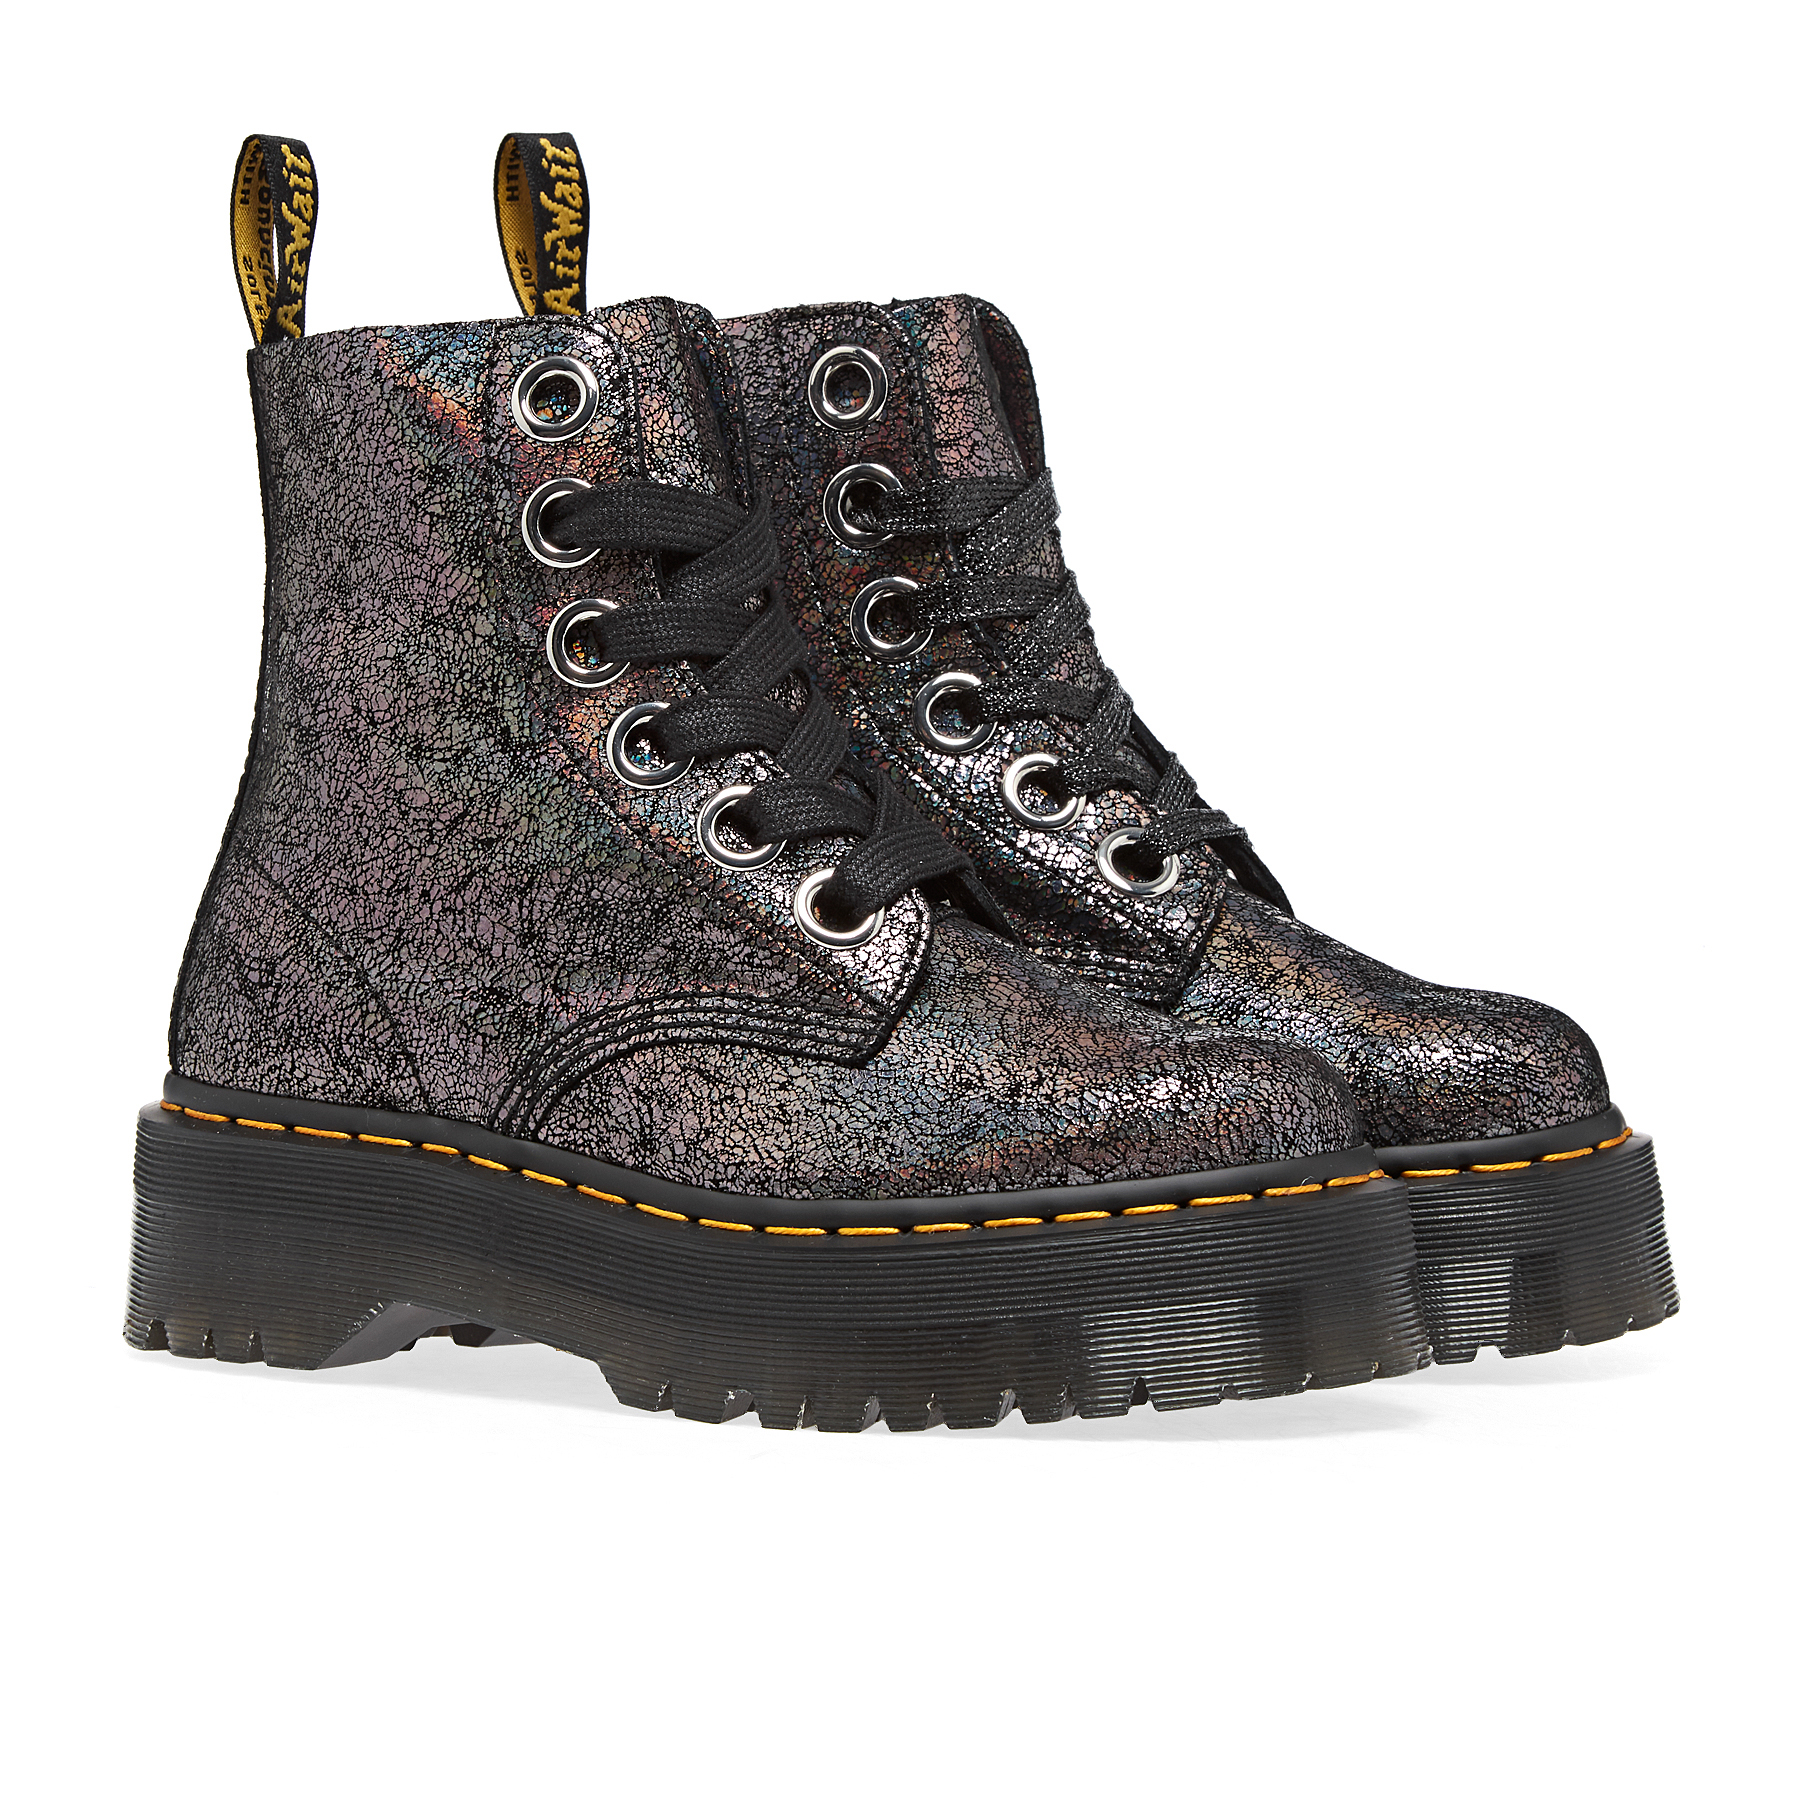 Dr Martens Molly Women's Boots Gunmetal Iridescent Crackle